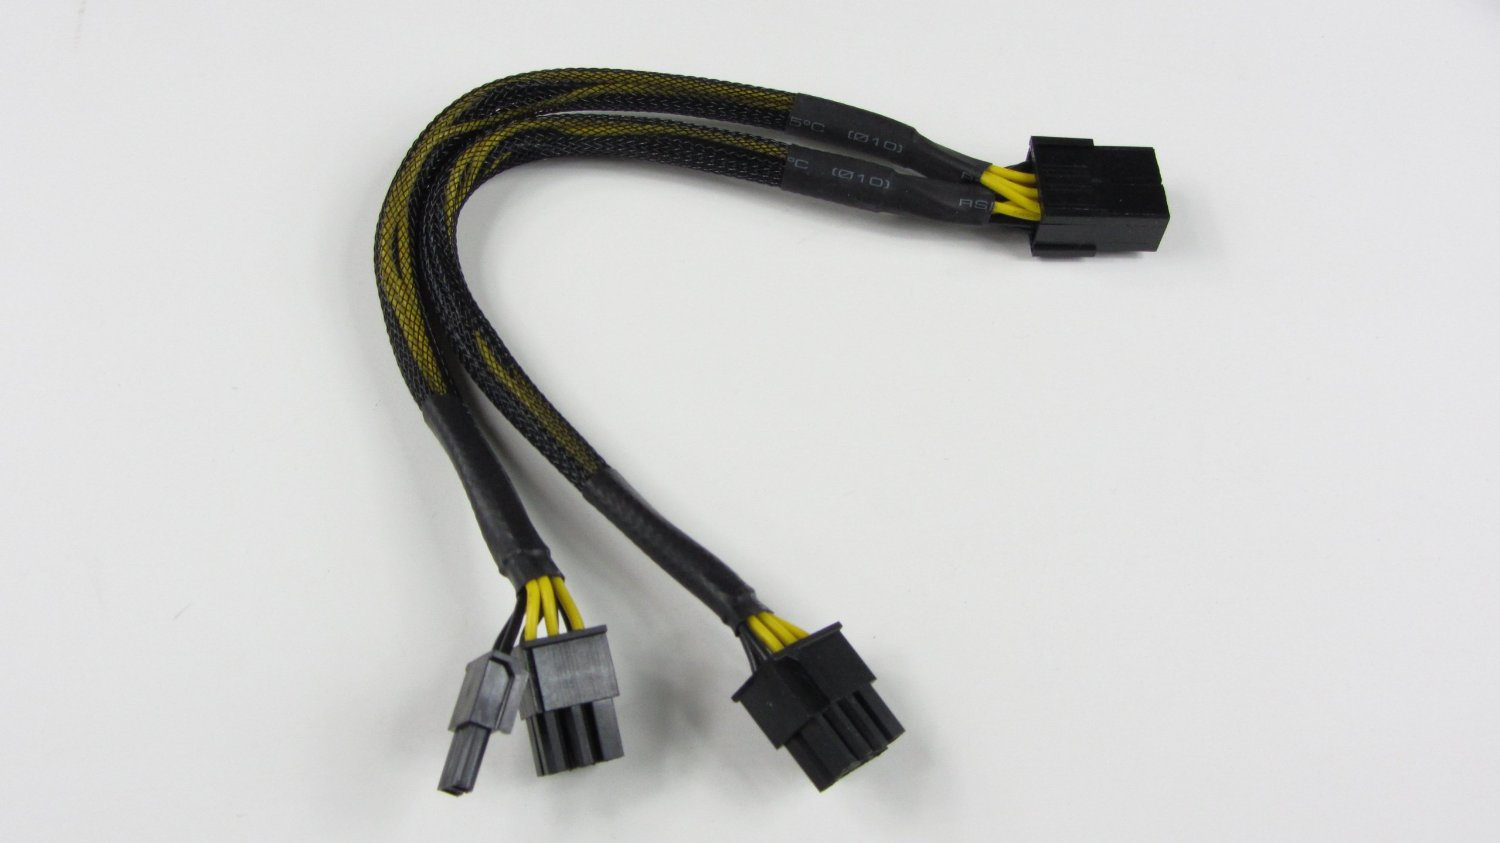 T320 Bigstair Pcie 8 Pin Wiring Diagram Pci Express To Dual 6 2 Video Card Y Splitter Adapter Power Supply Cable